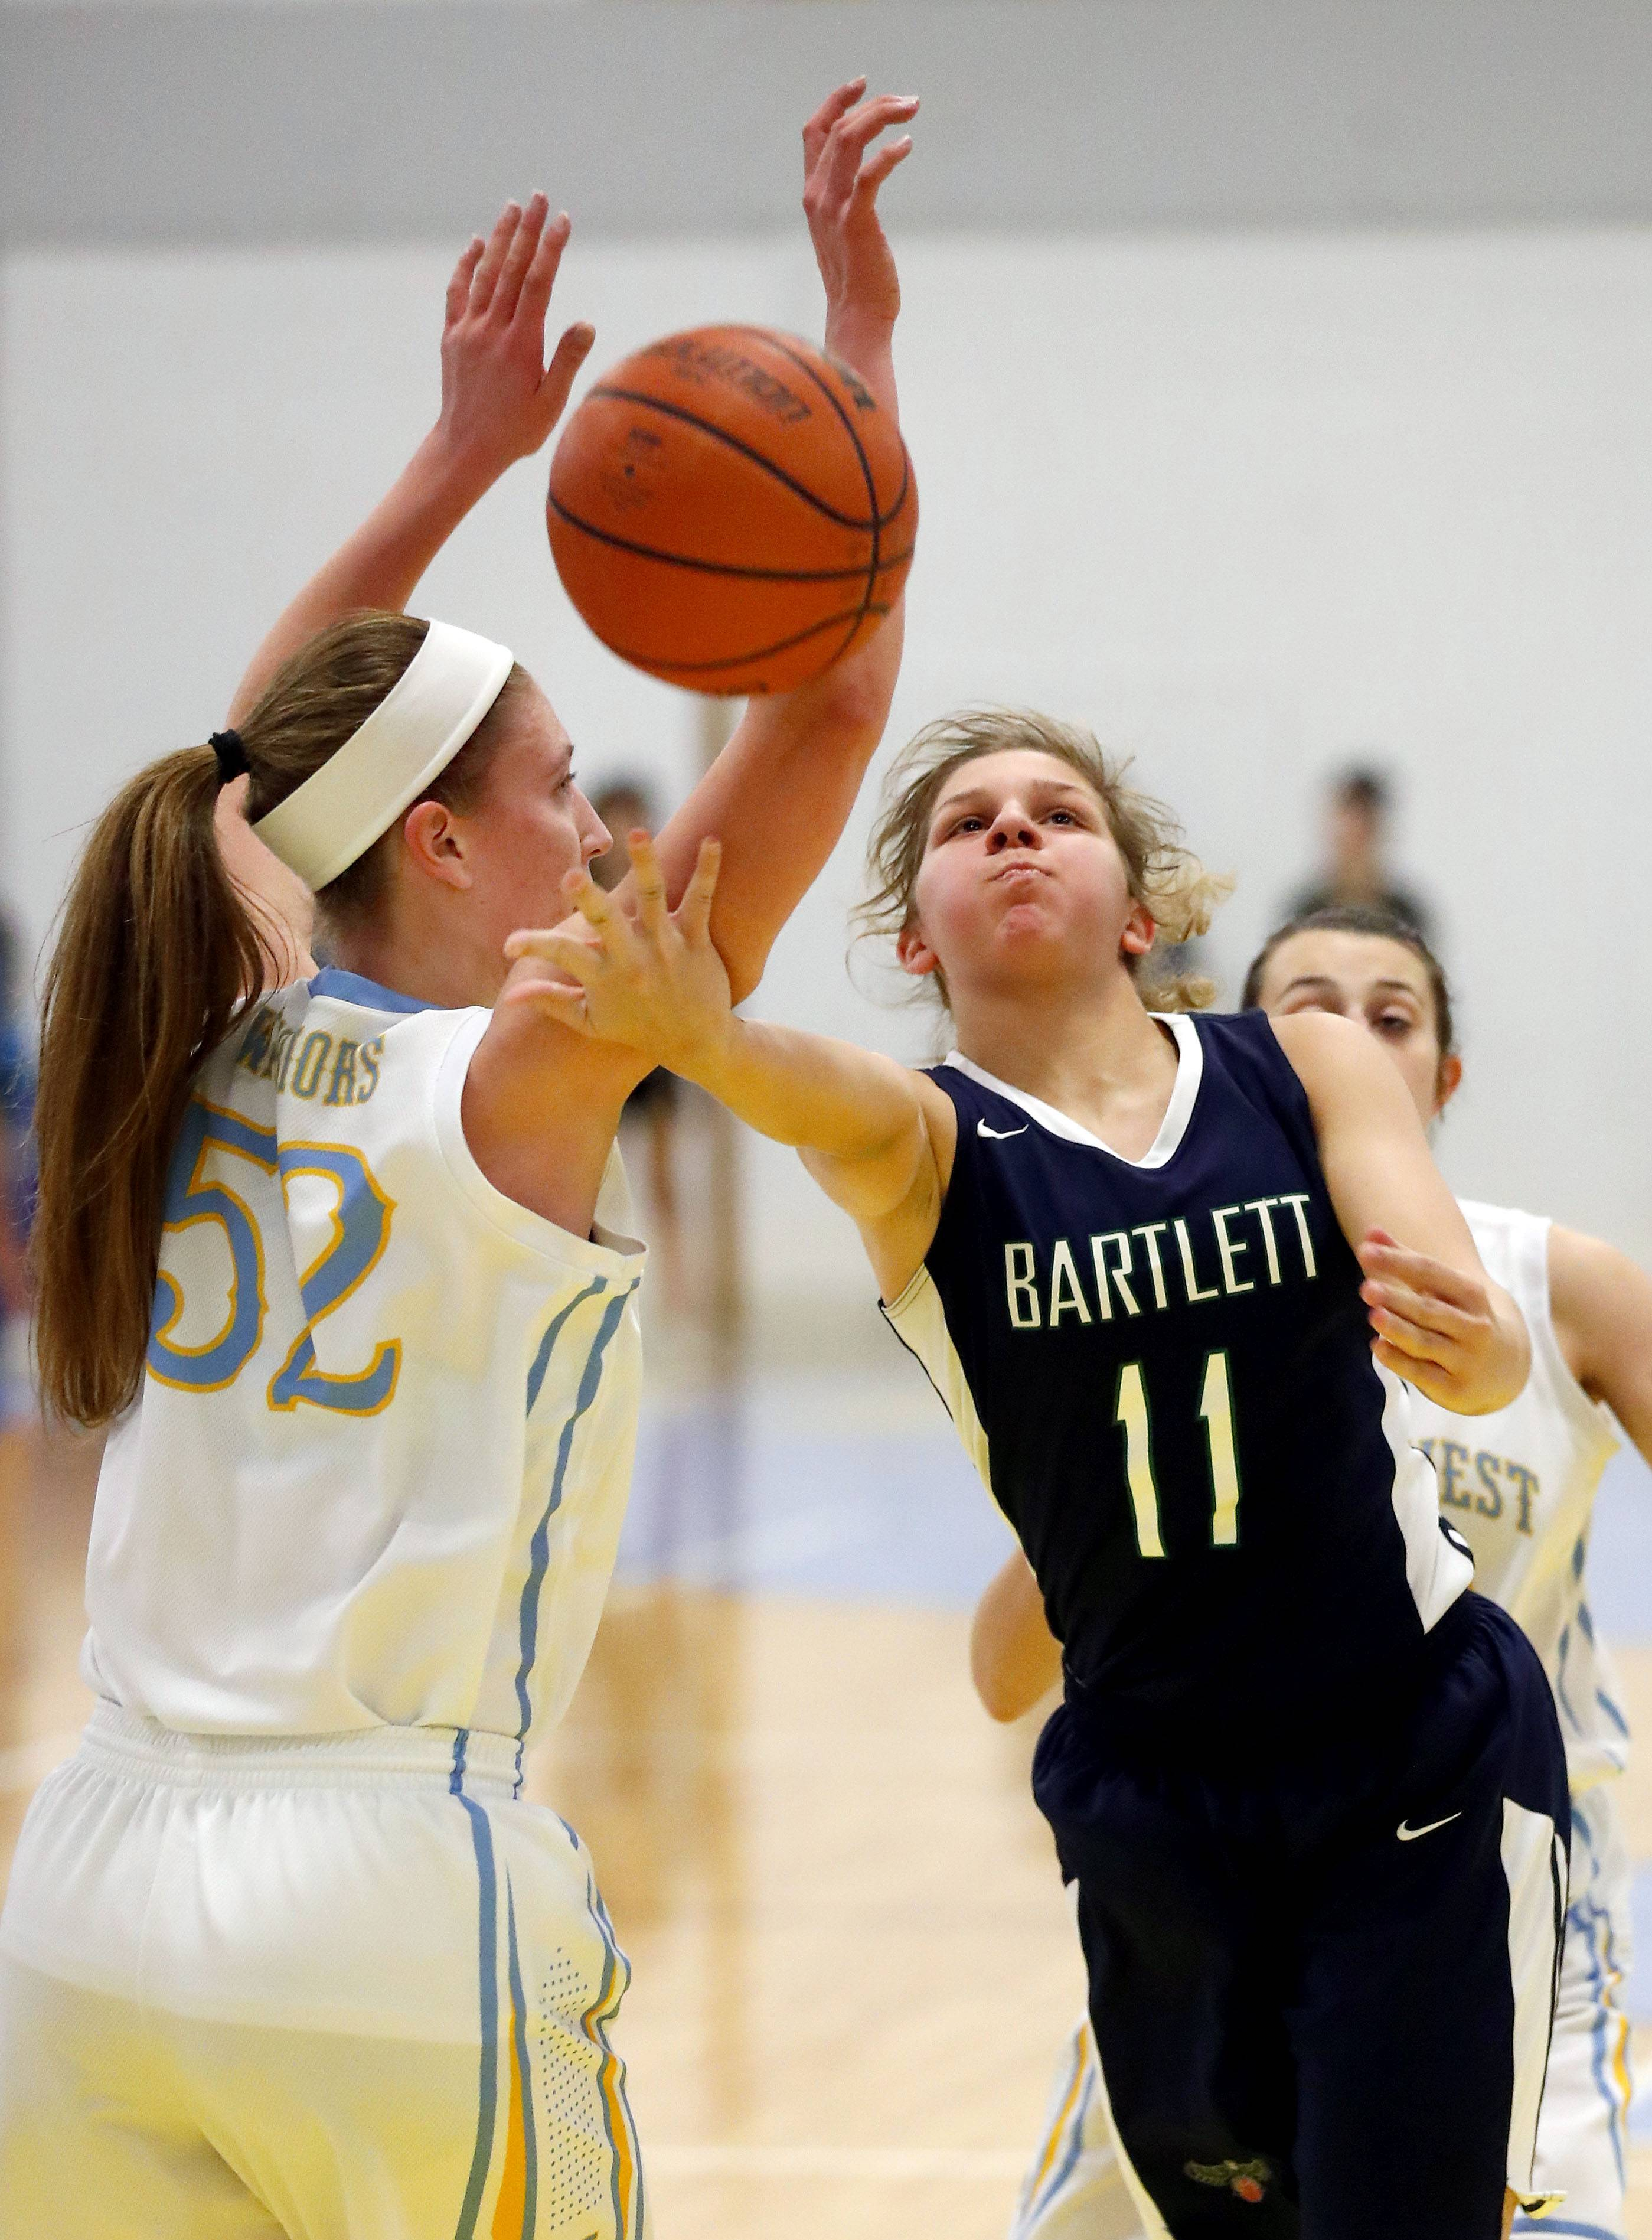 Bartlett's Lexie Sinclair is leading the area freshmen in scoring averaging 13.7 points a game.